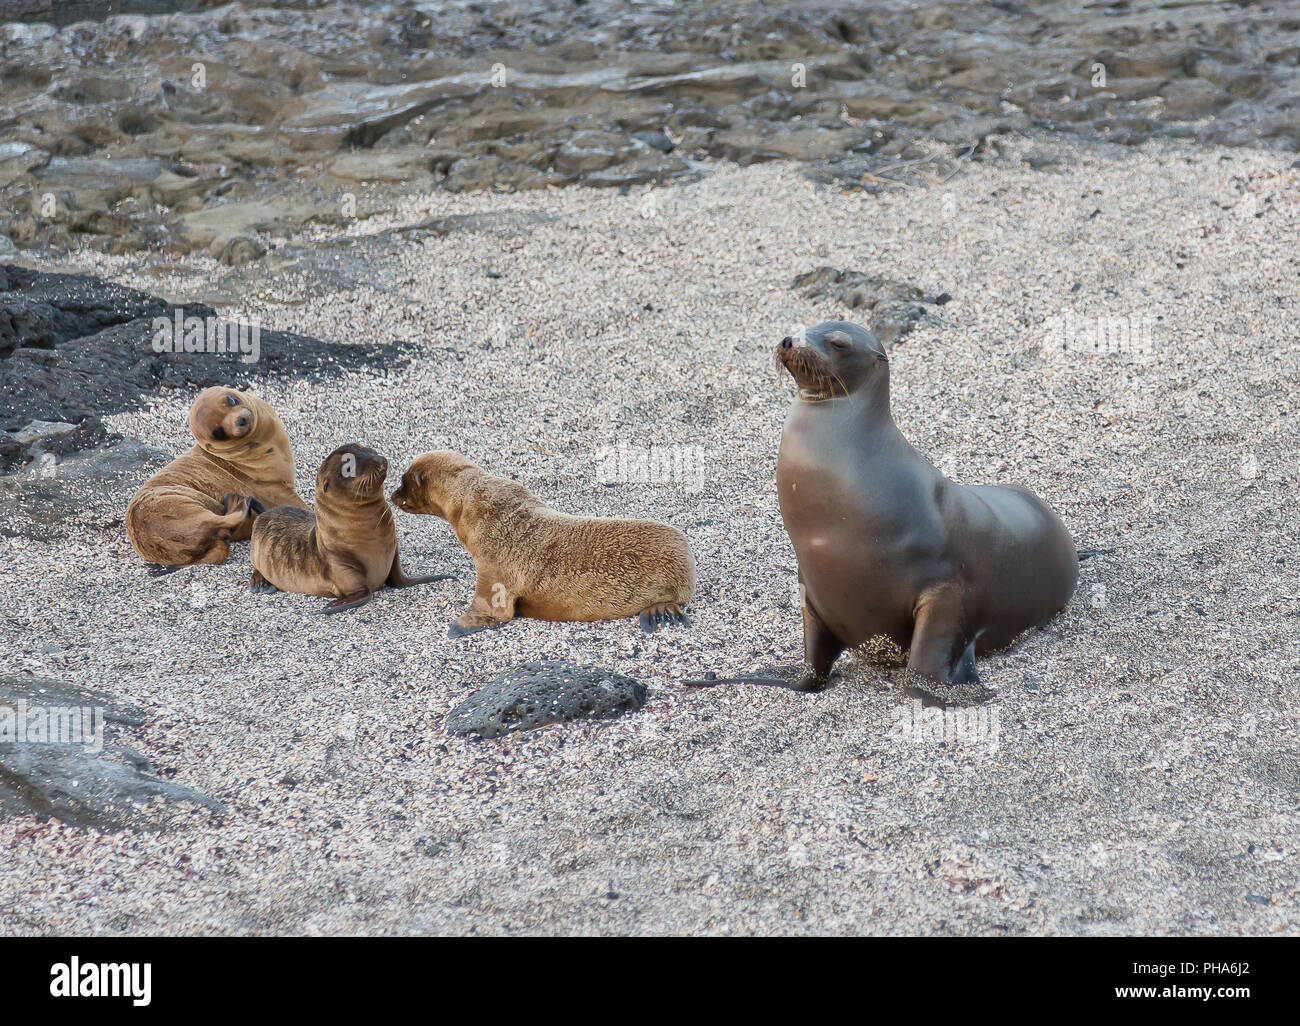 GALAPAGOS SEA LION WITH YOUNG - Stock Image